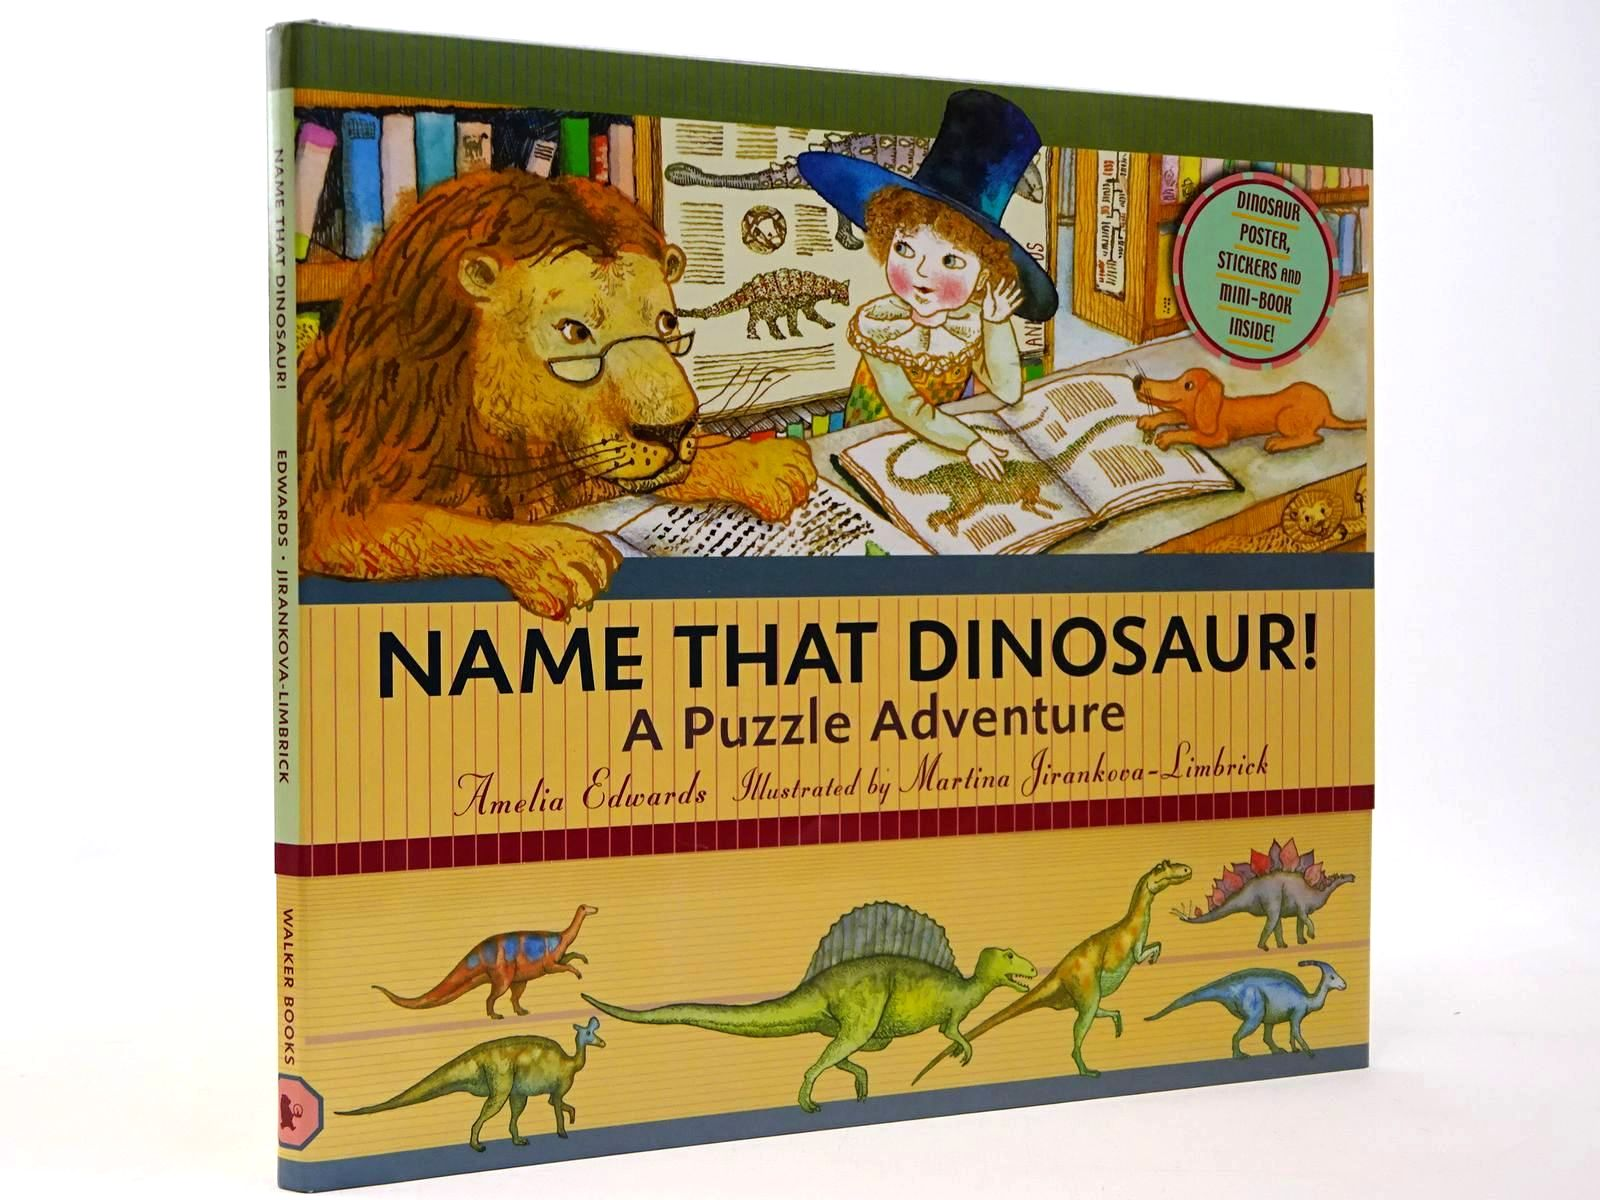 Photo of NAME THAT DINOSAUR! A PUZZLE ADVENTURE written by Edwards, Amelia illustrated by Jirankova-Limbrick, Martina published by Walker Books (STOCK CODE: 2129866)  for sale by Stella & Rose's Books